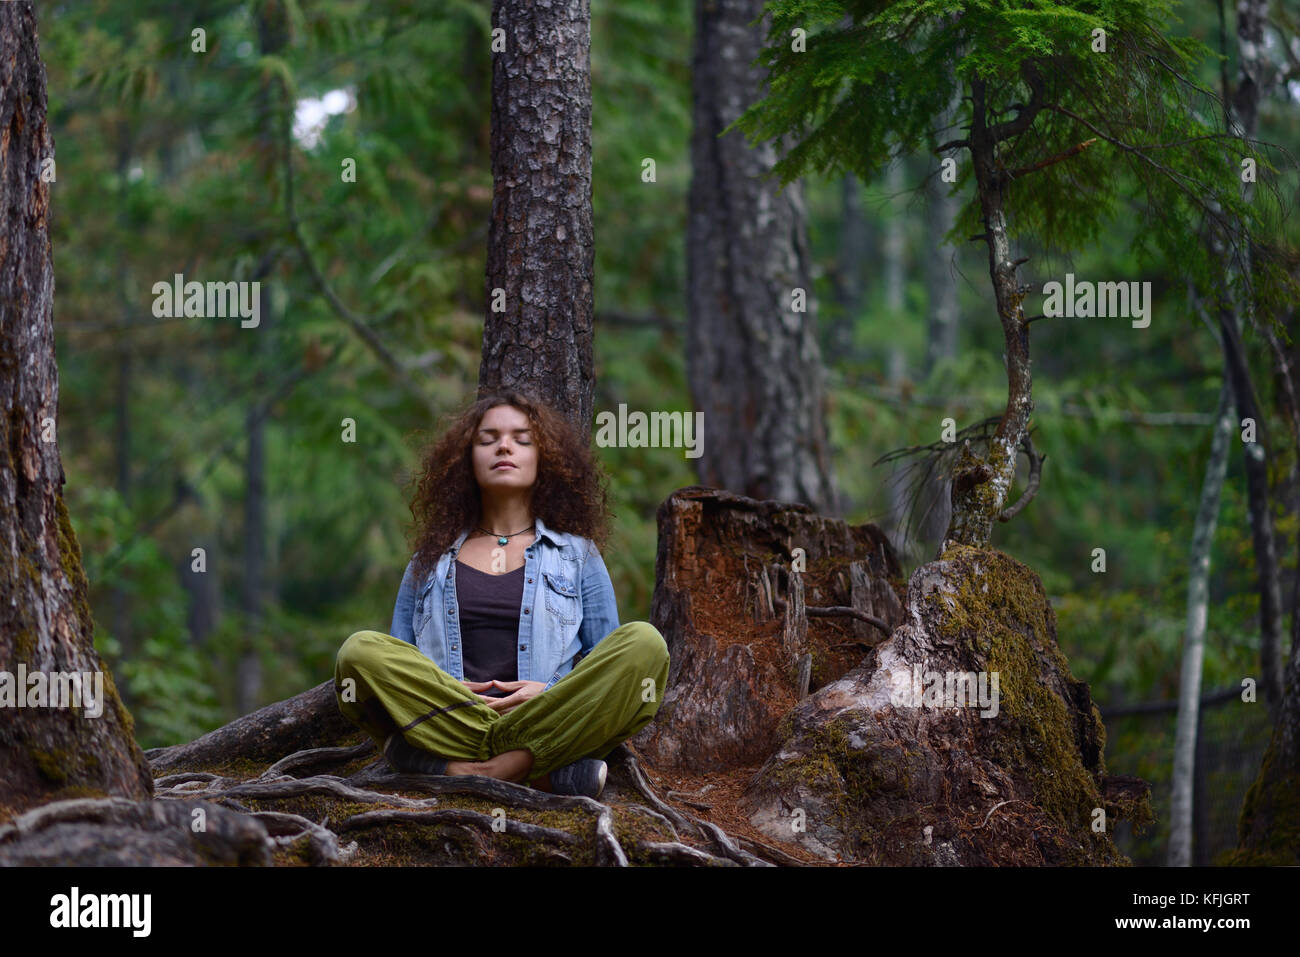 Young woman resting in a forest sitting in meditation posture leaning against a tree trunk in beautiful tranquil - Stock Image